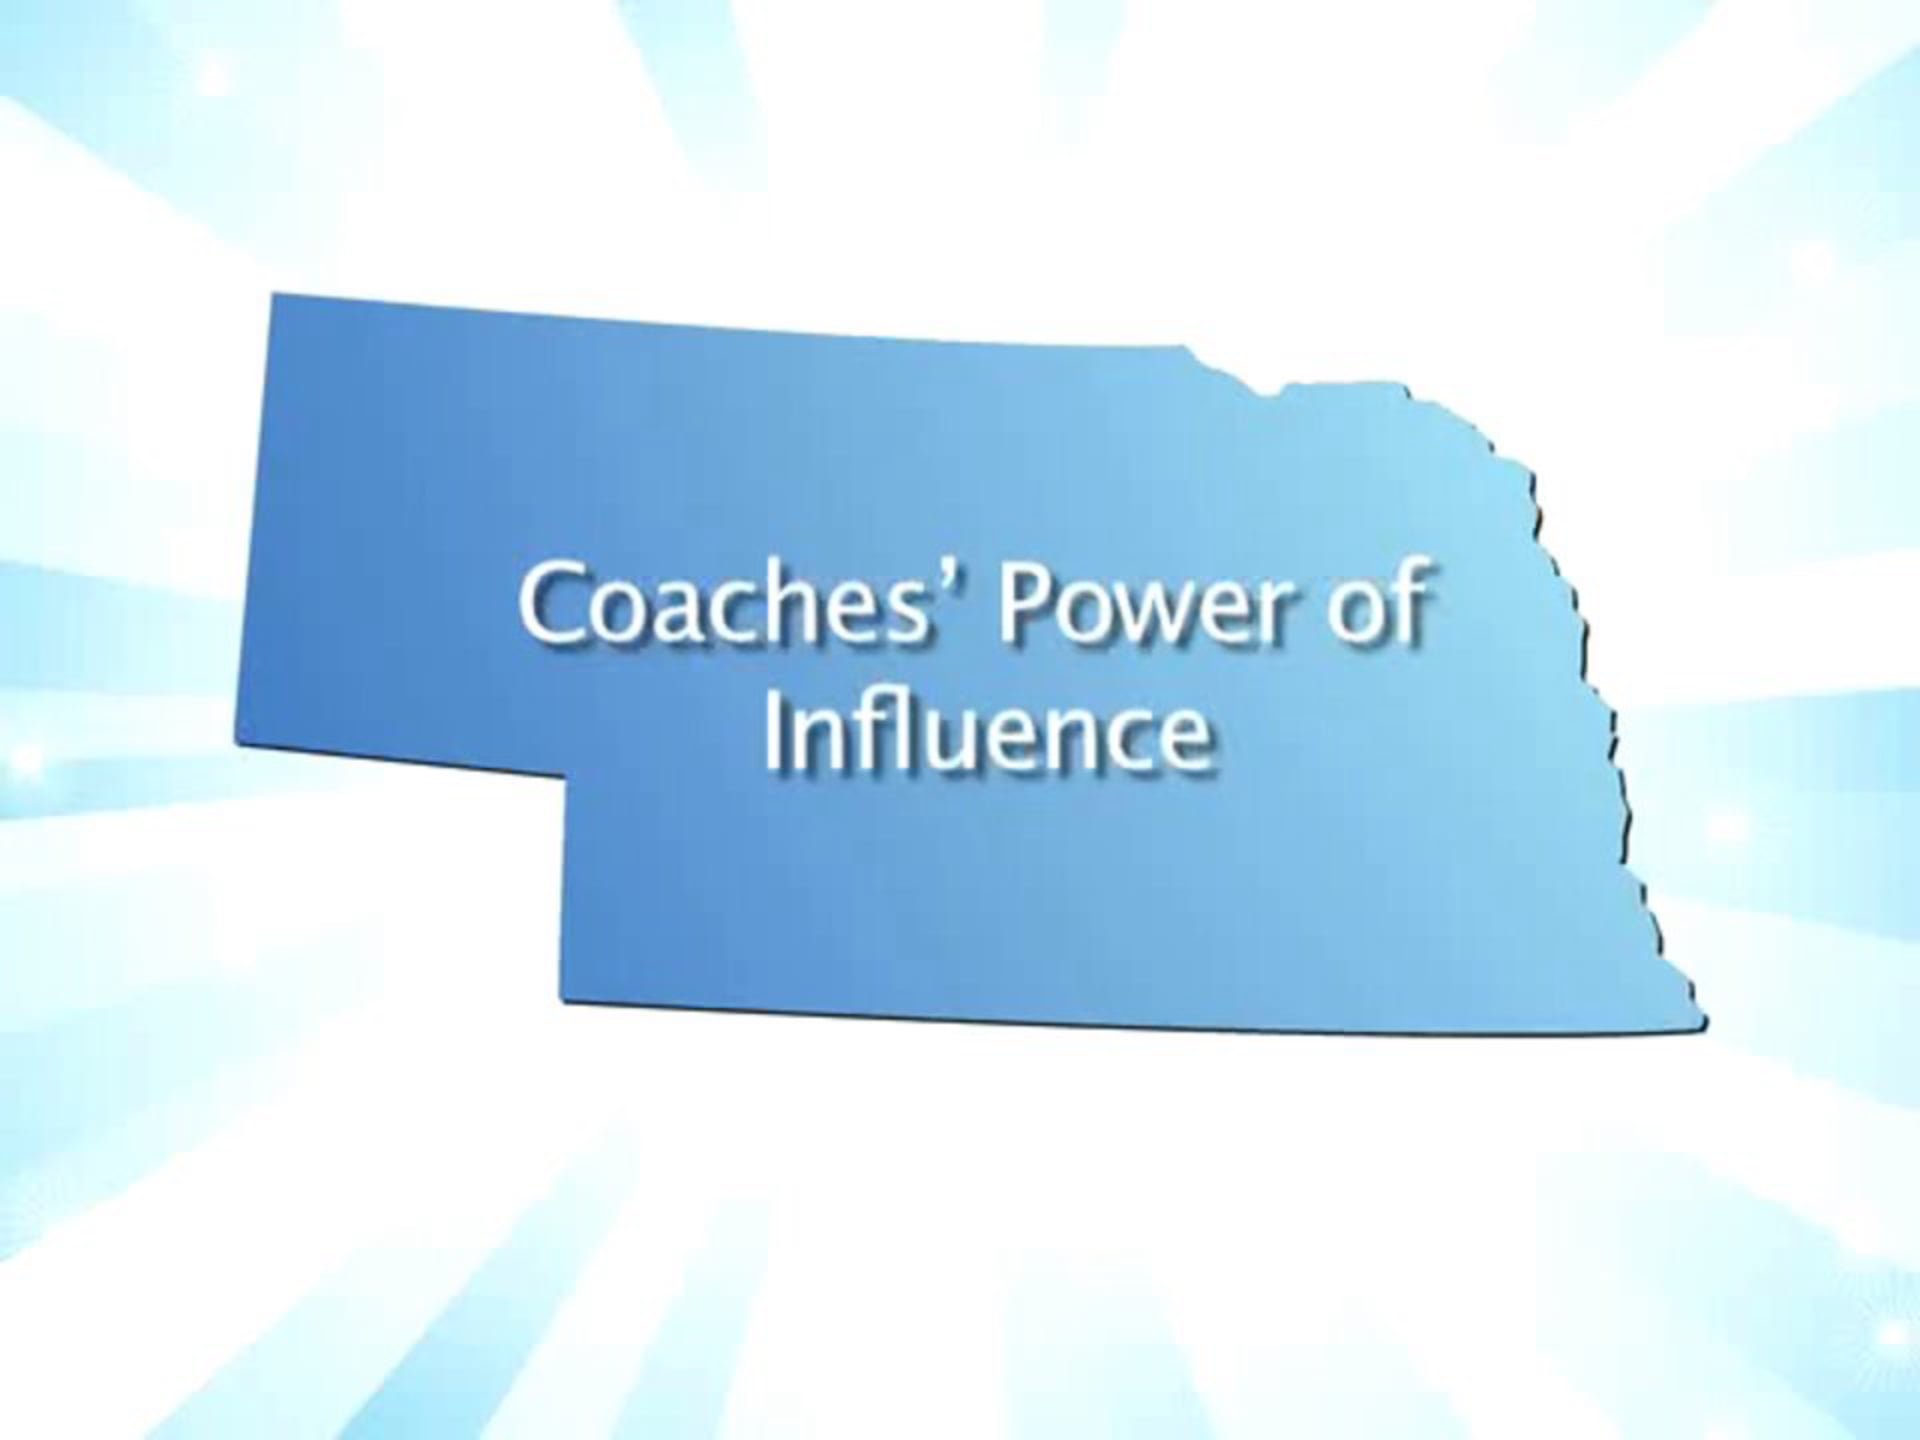 Coaching Beyond the Game, October 2013: Coaches' Power of Influence